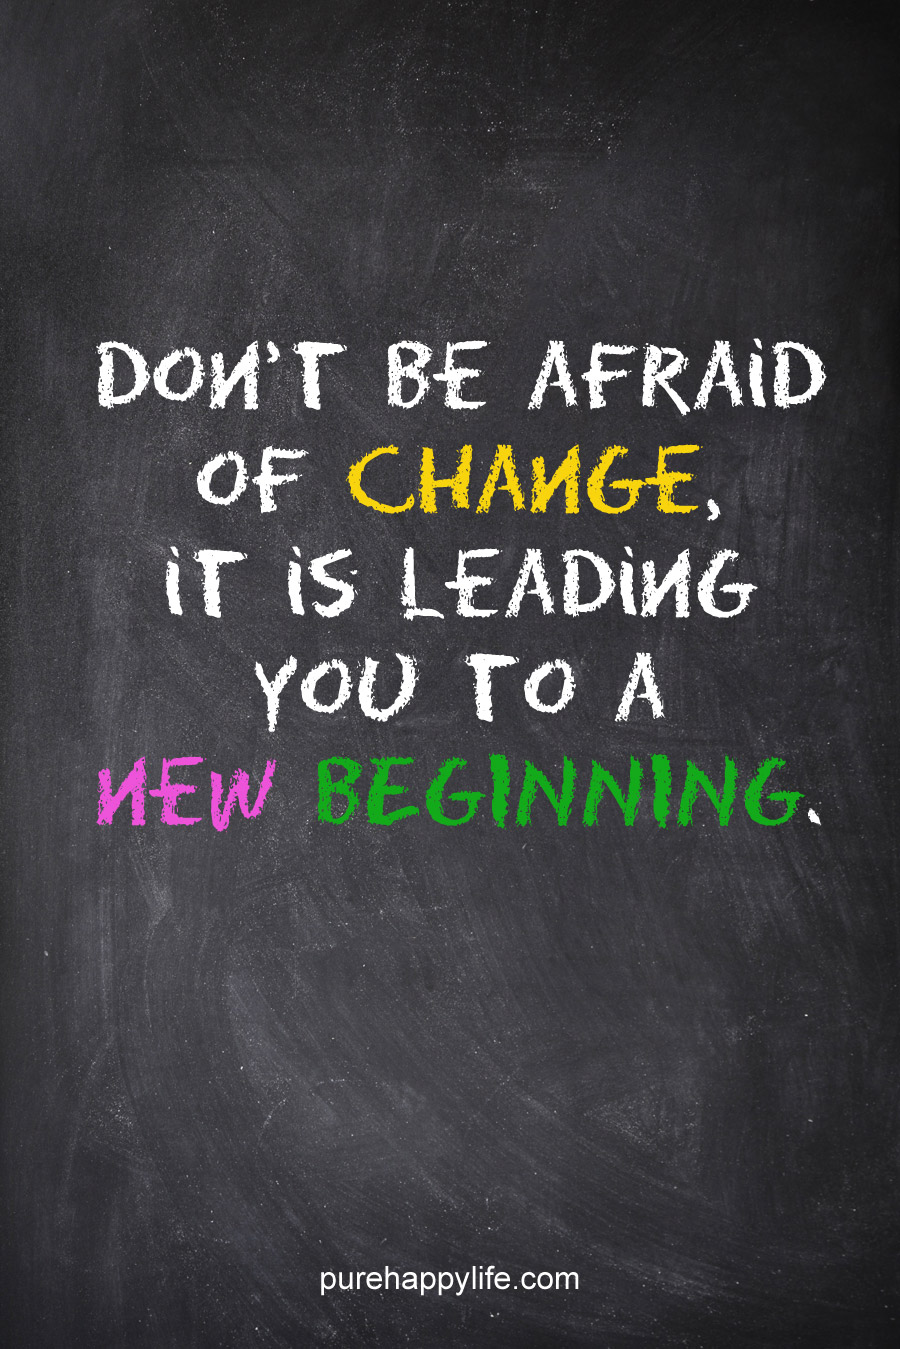 Don't be afraid of change because it's leading you to a new beginning